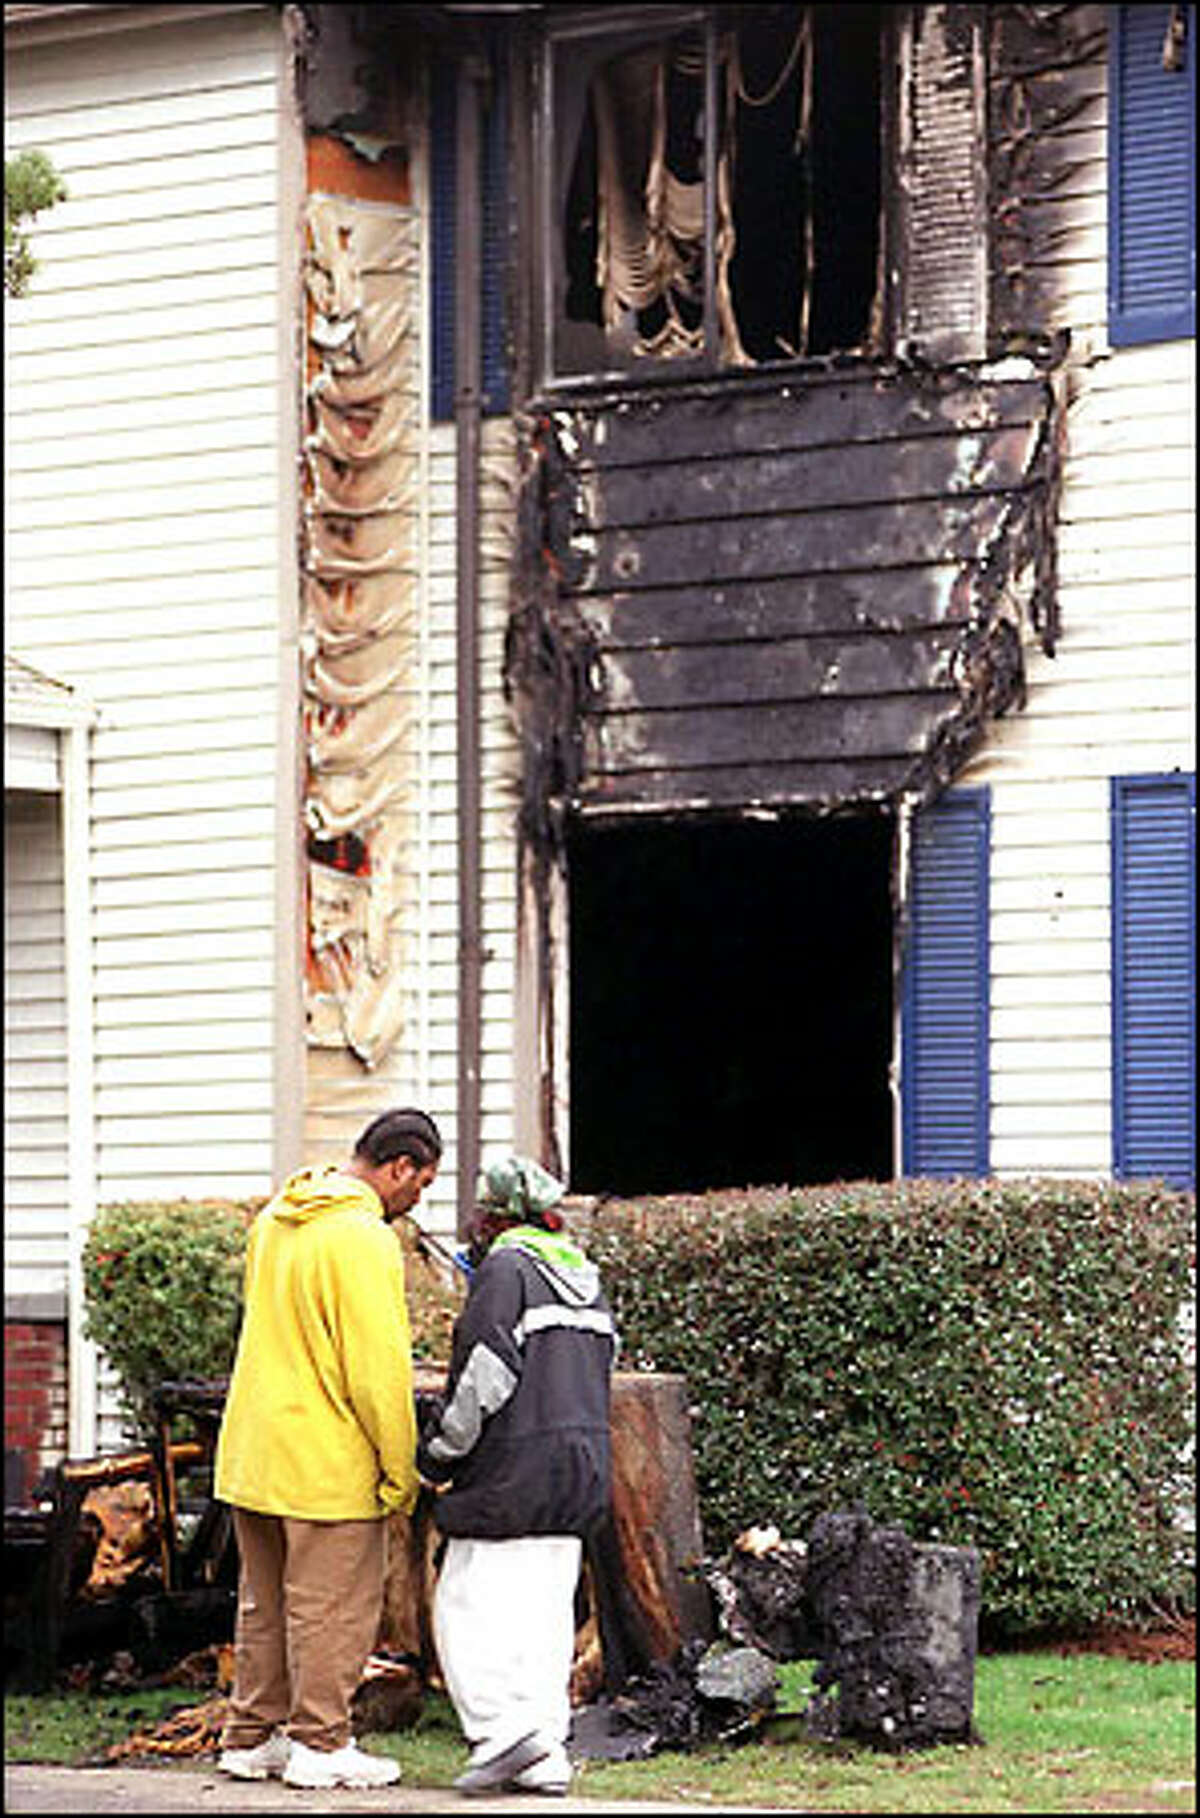 Residents of the Vintage Park apartments look over the aftermath of a fire in the Burien complex yesterday morning. More than 30 people were forced to evacuate, but housing was found for them. No injuries were reported.